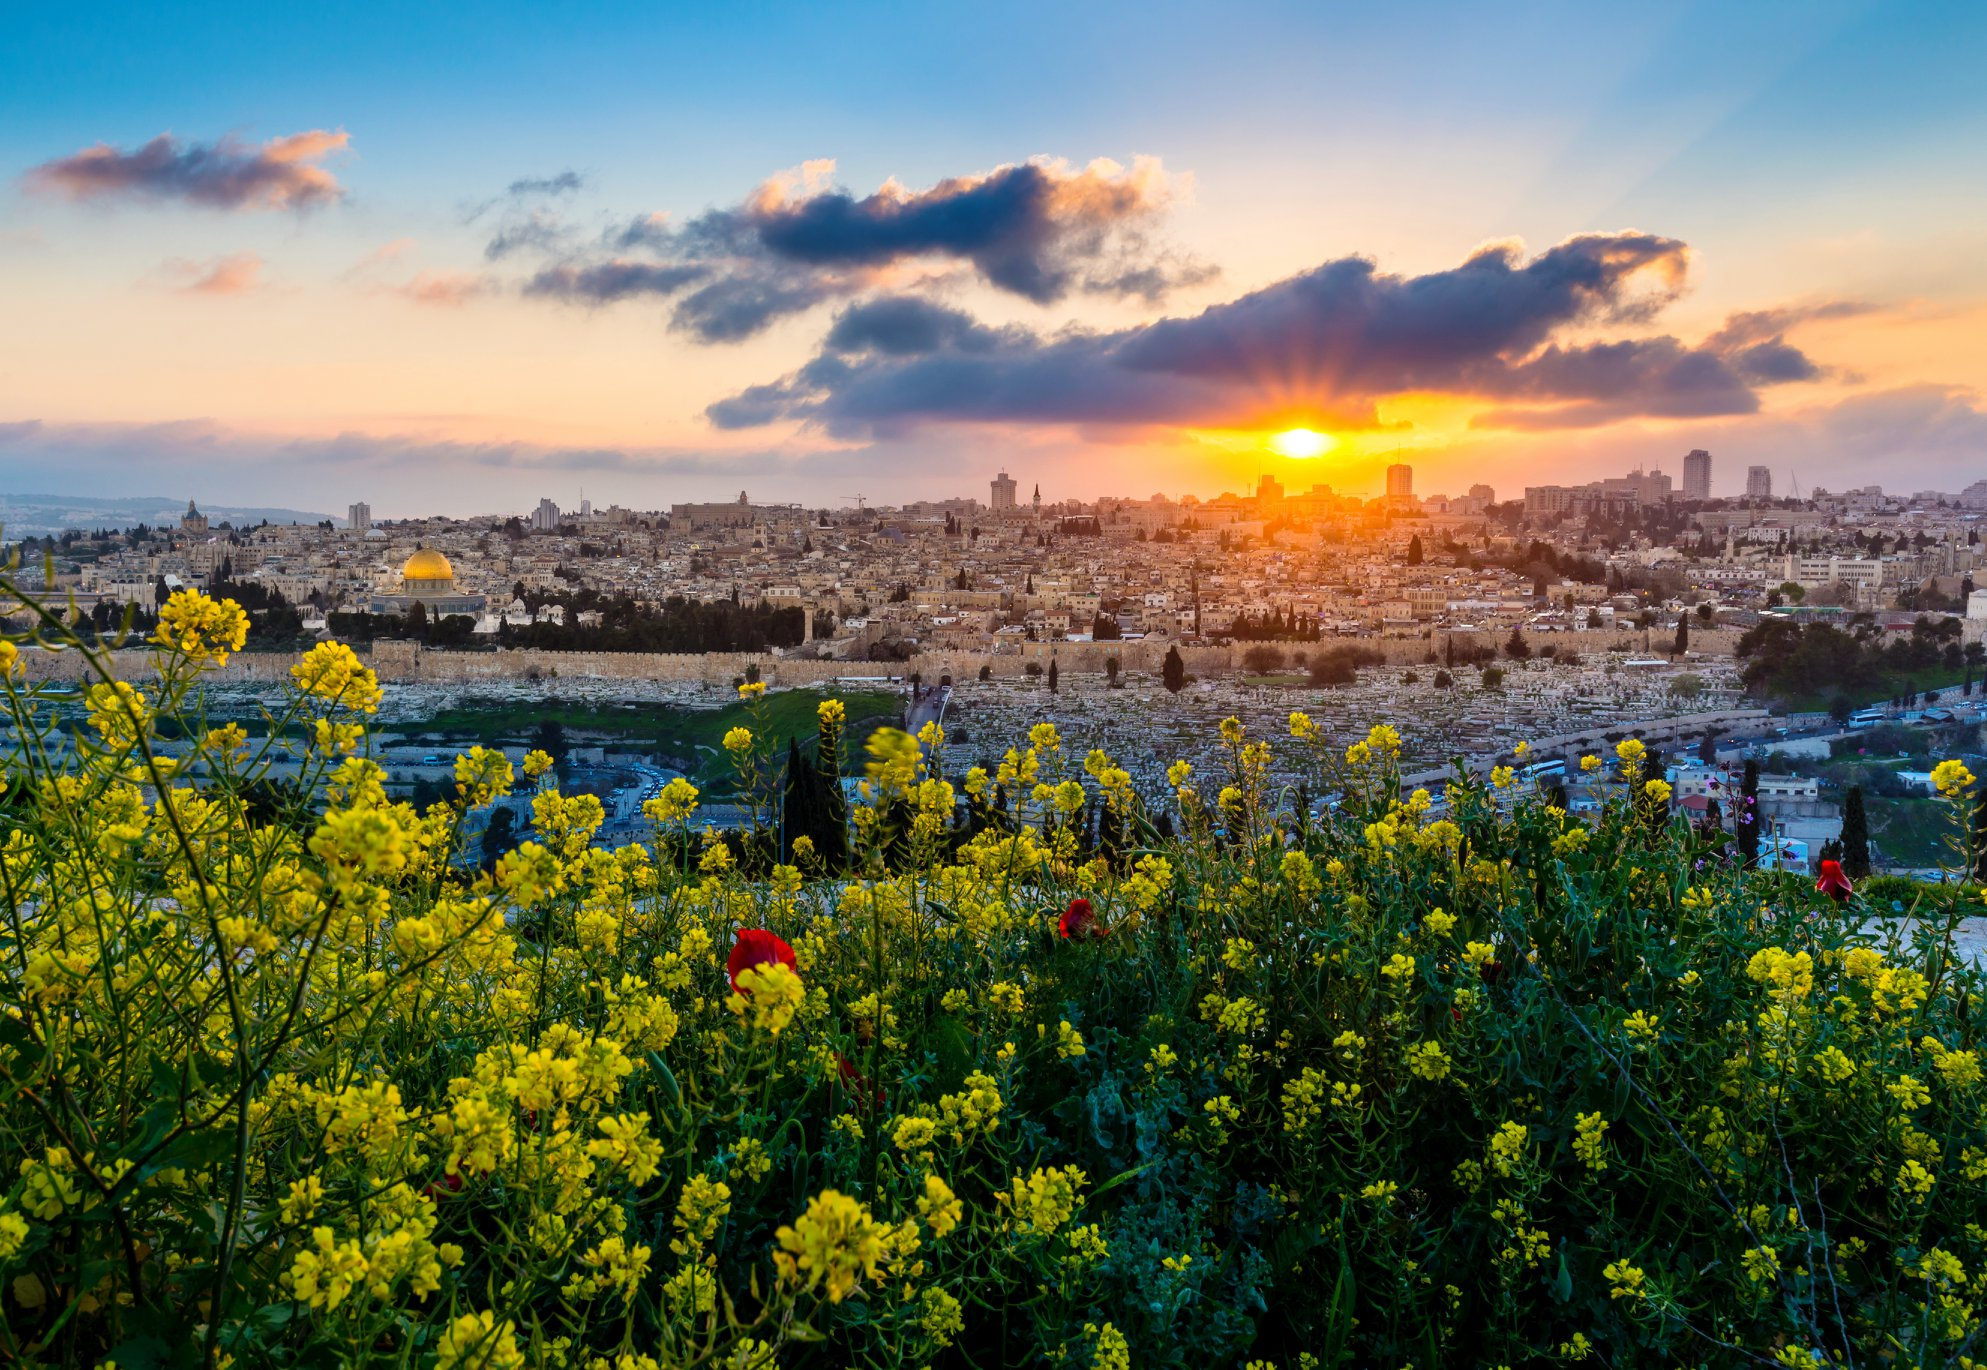 Happy New Year from beautiful Israel!